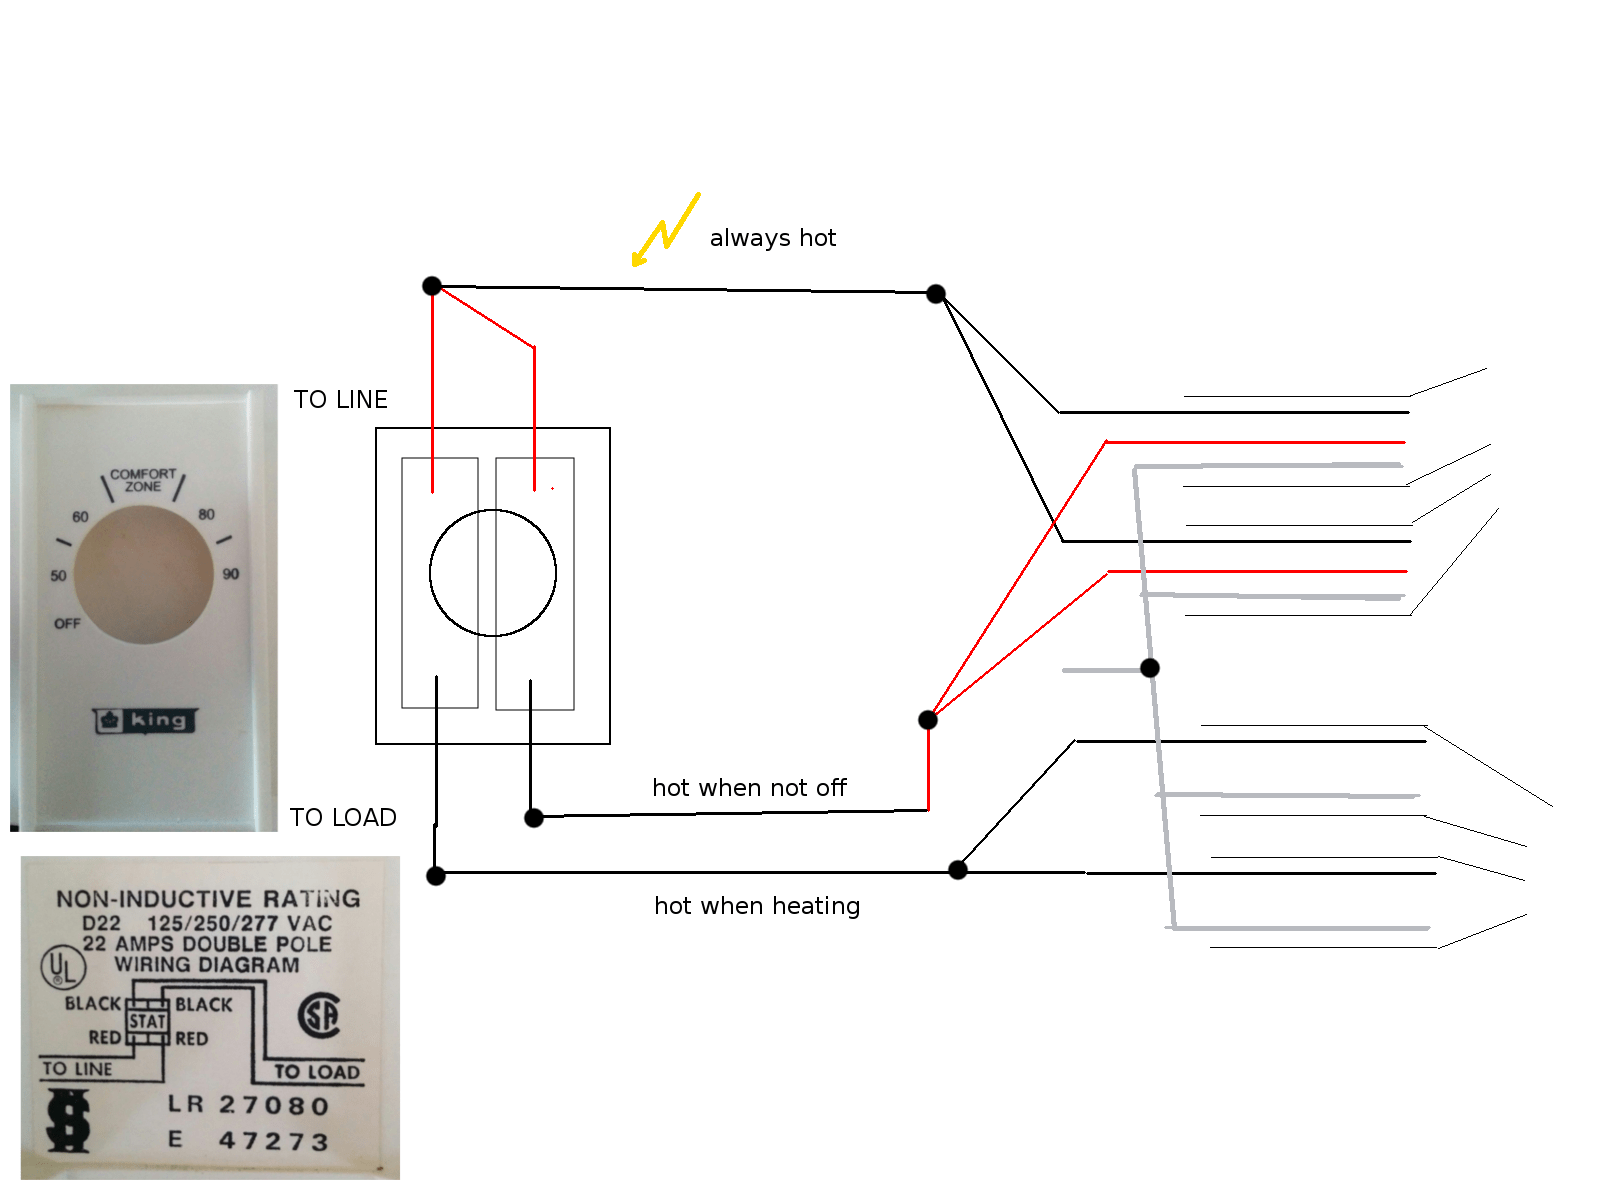 medium resolution of marley baseboard heater thermostat wiring on marley images free